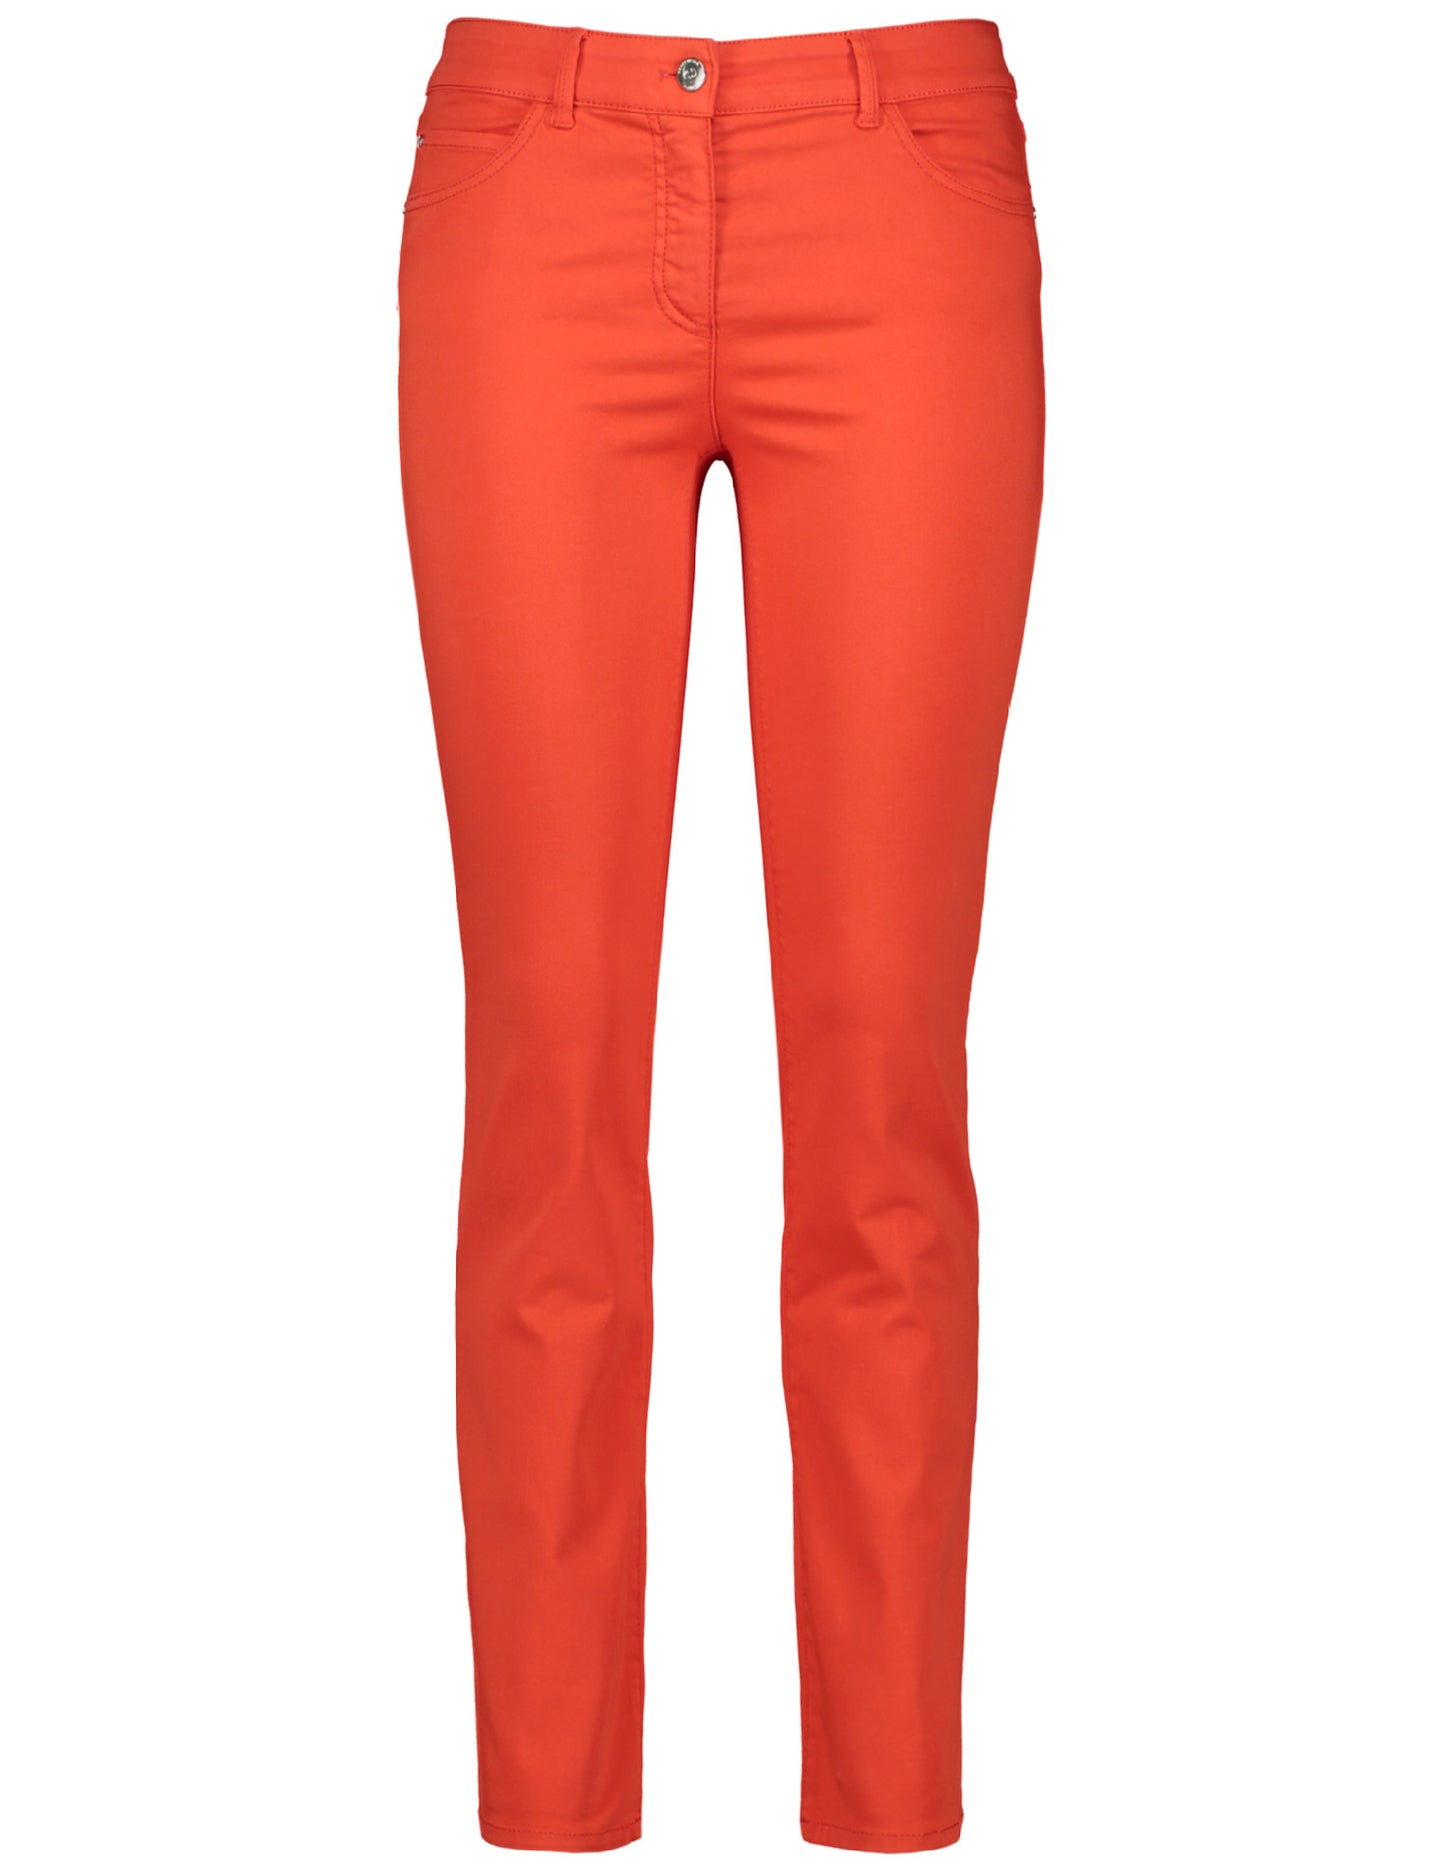 Cotton Jean - Orange